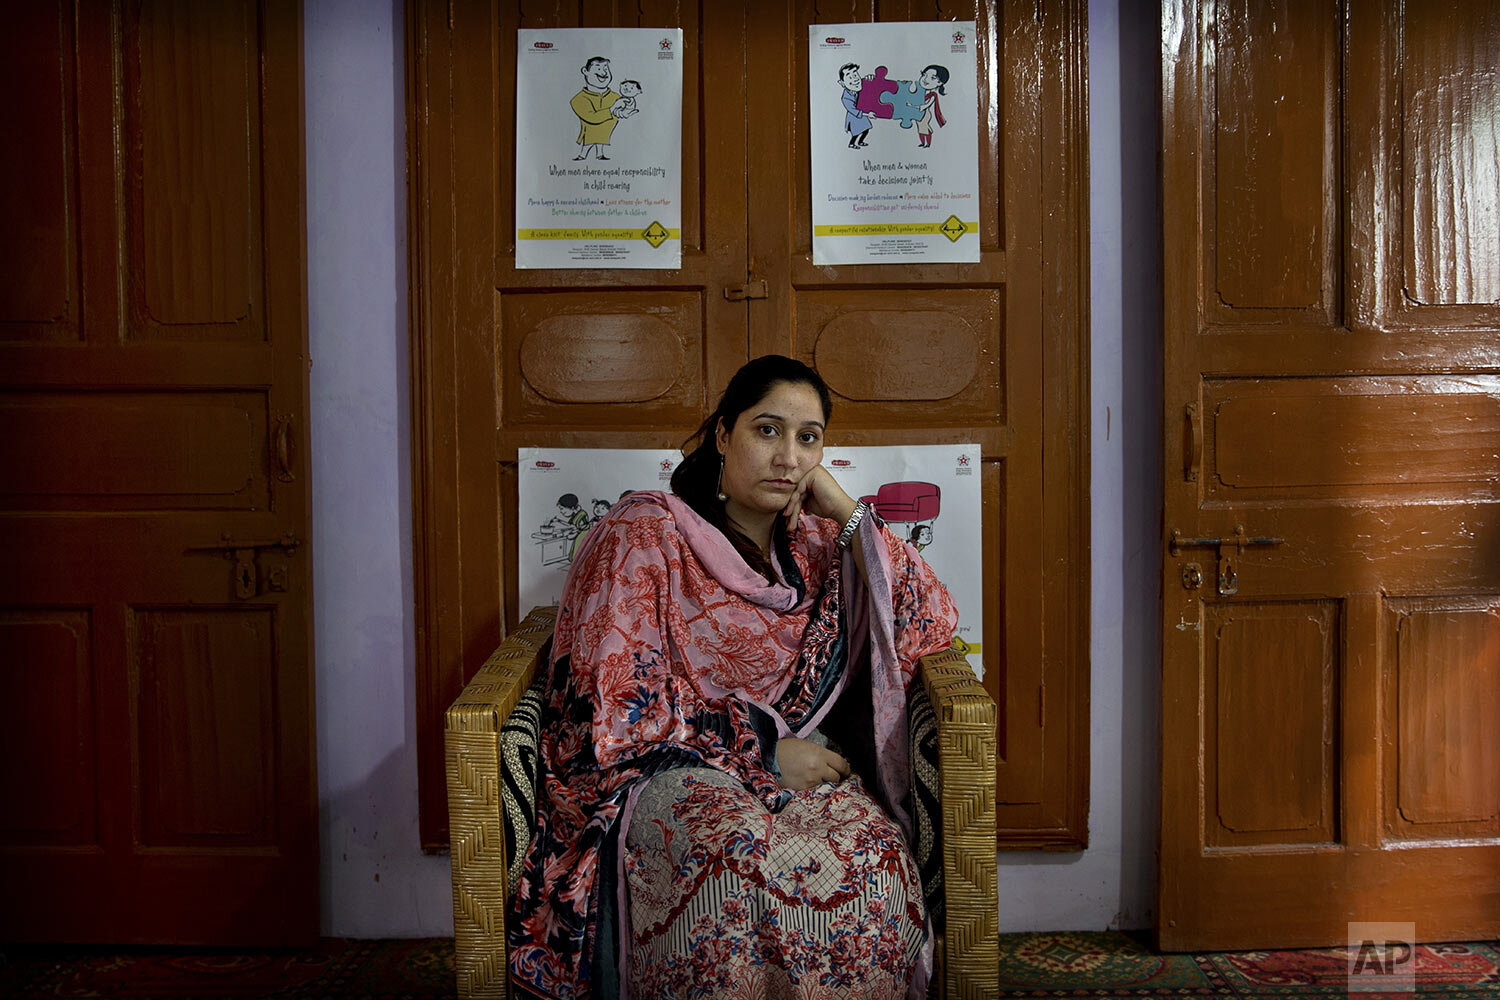 Mantasha Binti Rashid sits for a photograph in Srinagar, Indian-controlled Kashmir, Thursday, Oct. 24, 2019. (AP Photo/Dar Yasin)